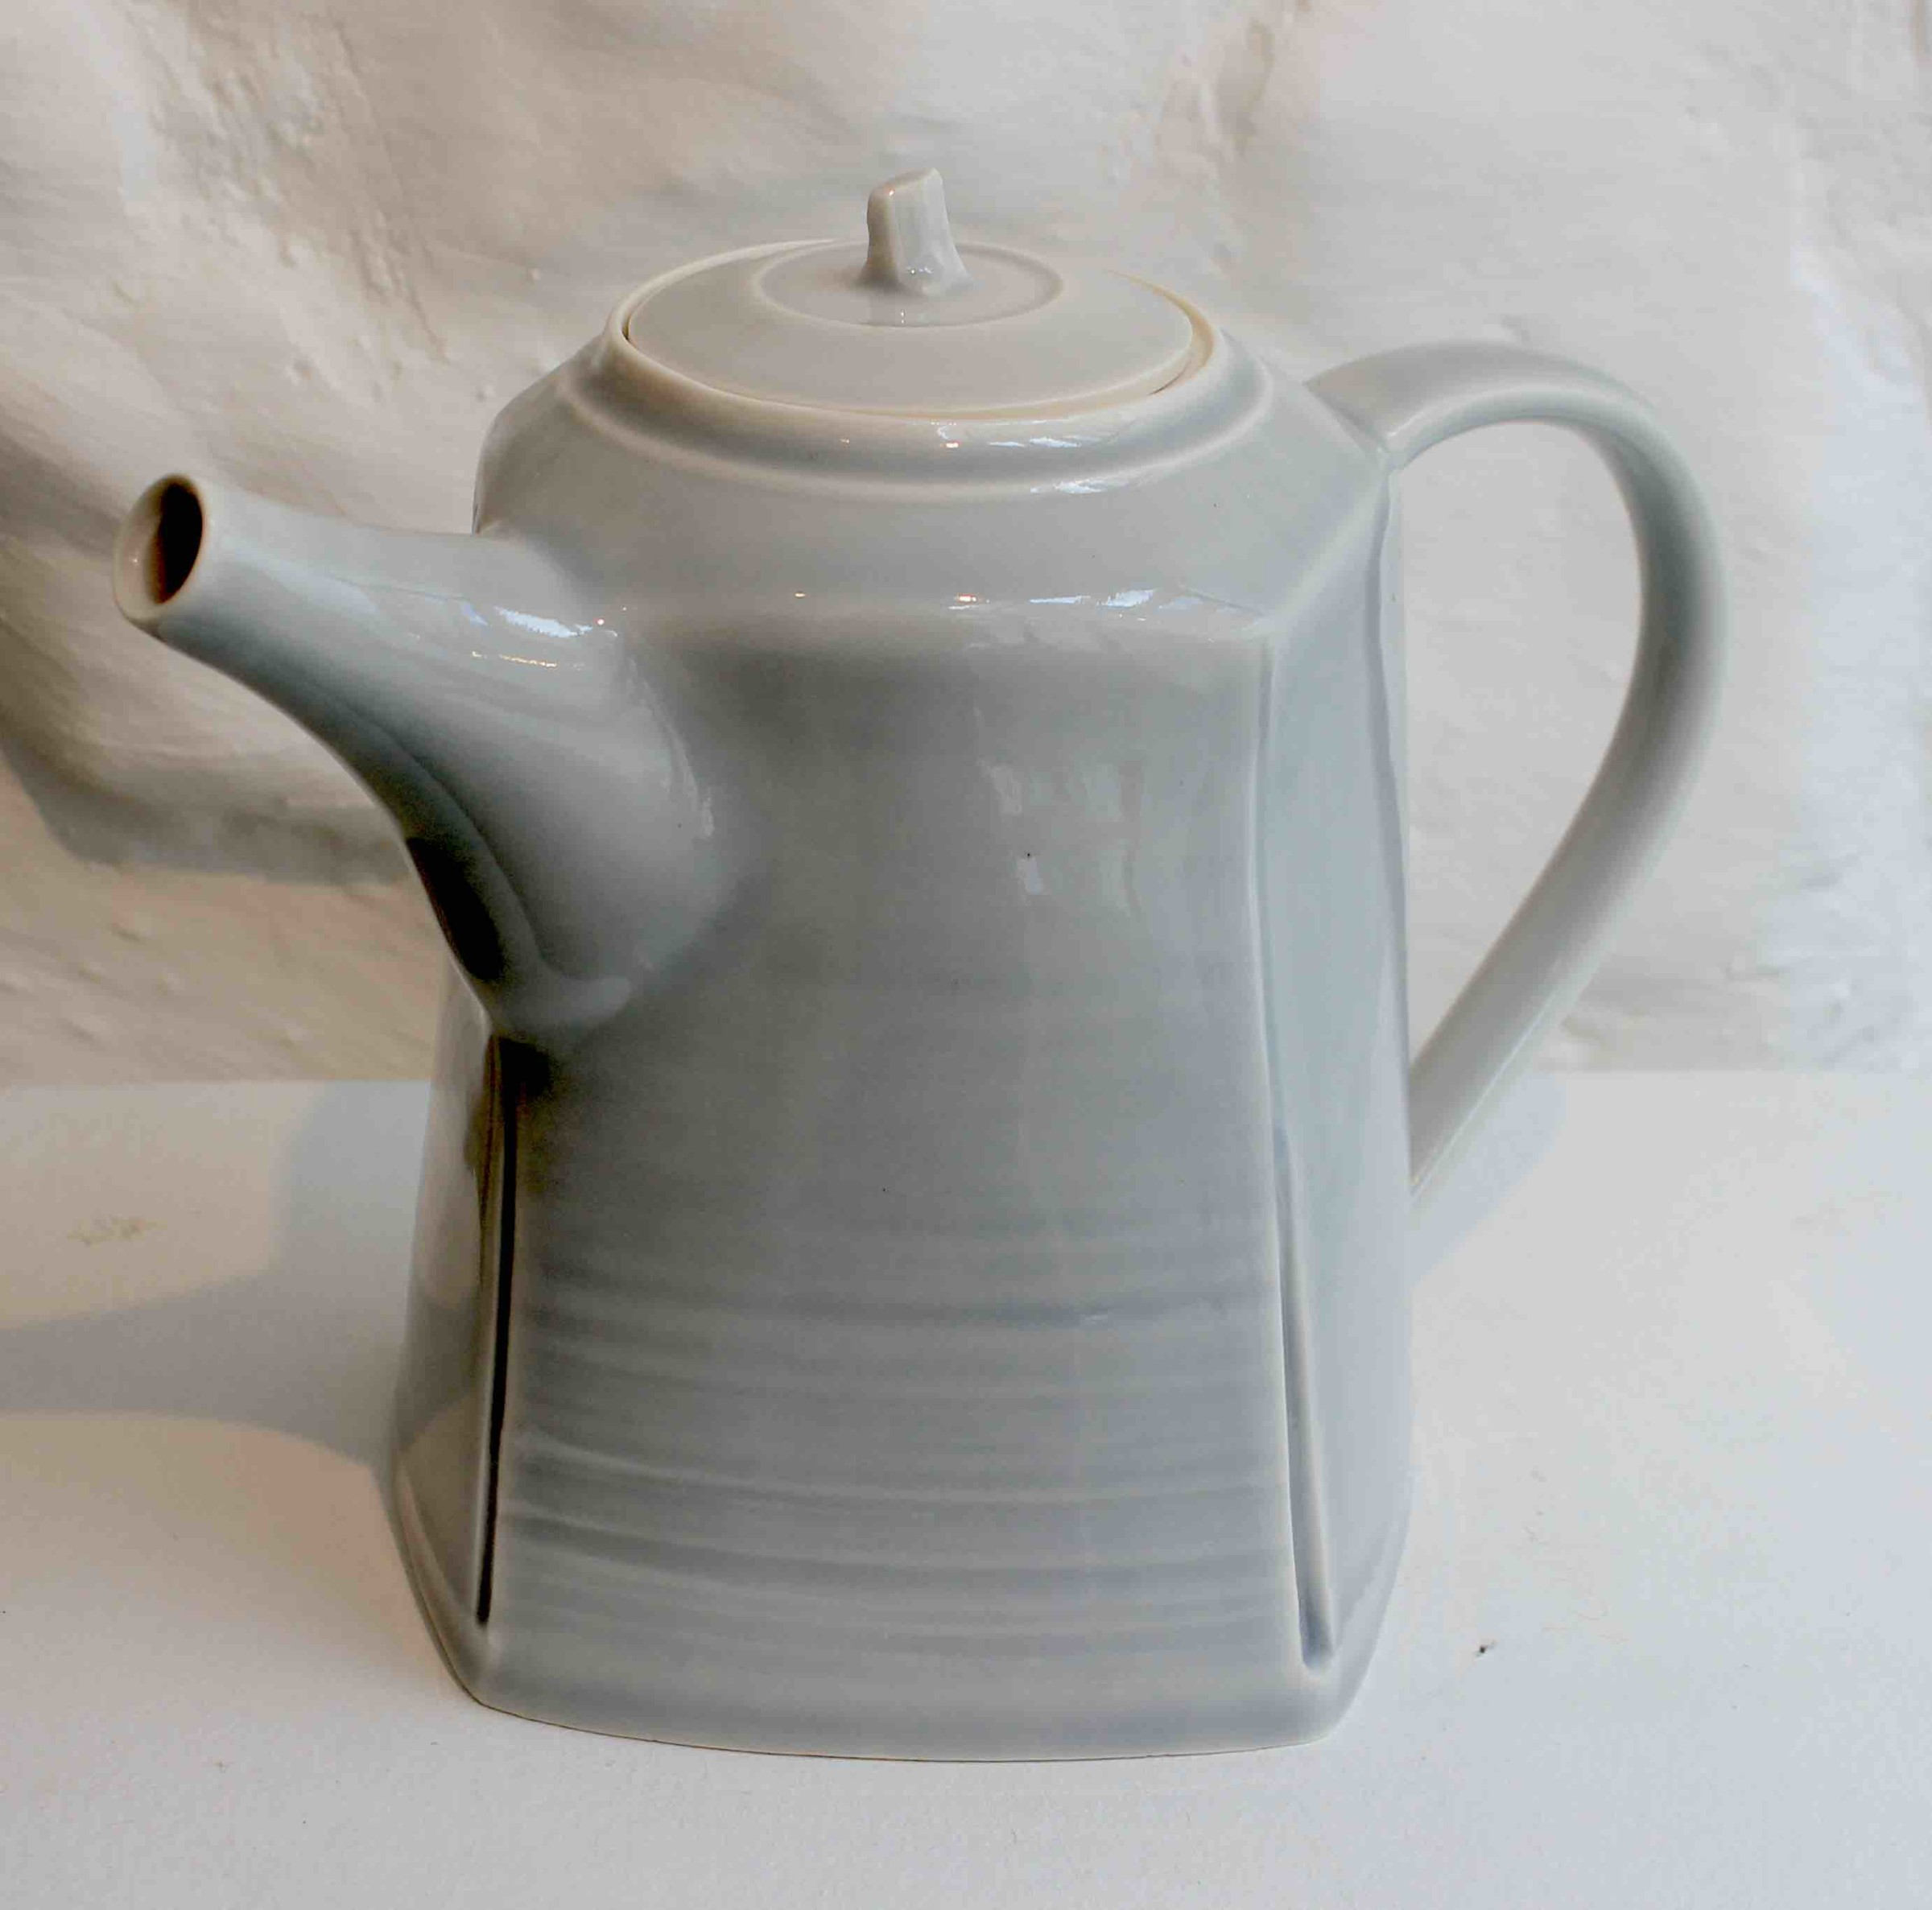 "<span class=""link fancybox-details-link""><a href=""/artists/99-carina-ciscato/works/5764-carina-ciscato-pale-grey-teapot-2018/"">View Detail Page</a></span><div class=""artist""><strong>Carina Ciscato</strong></div> <div class=""title""><em>Pale Grey Teapot</em>, 2018</div> <div class=""signed_and_dated"">porcelain</div> <div class=""medium"">porcelain</div> <div class=""dimensions"">6 x 14 cm<br /> 2 3/8 x 5 1/2 inches</div><div class=""price"">£600.00</div><div class=""copyright_line"">OwnArt: £60 x 10 Months, 0% APR</div>"